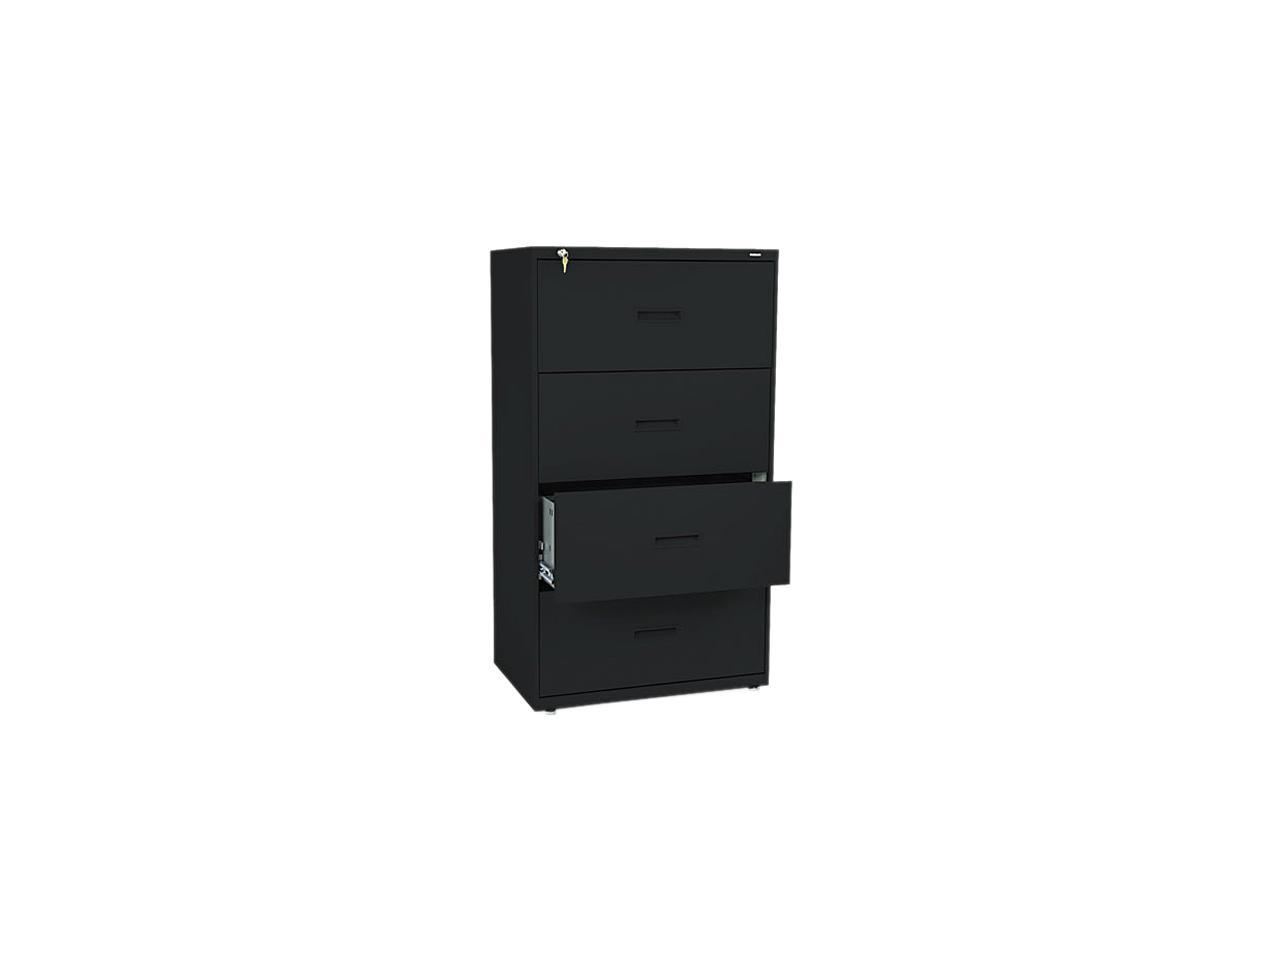 Details About Hon Furniture Files Lateral File Cabinets Filing Supplies 400 Series Steel Black